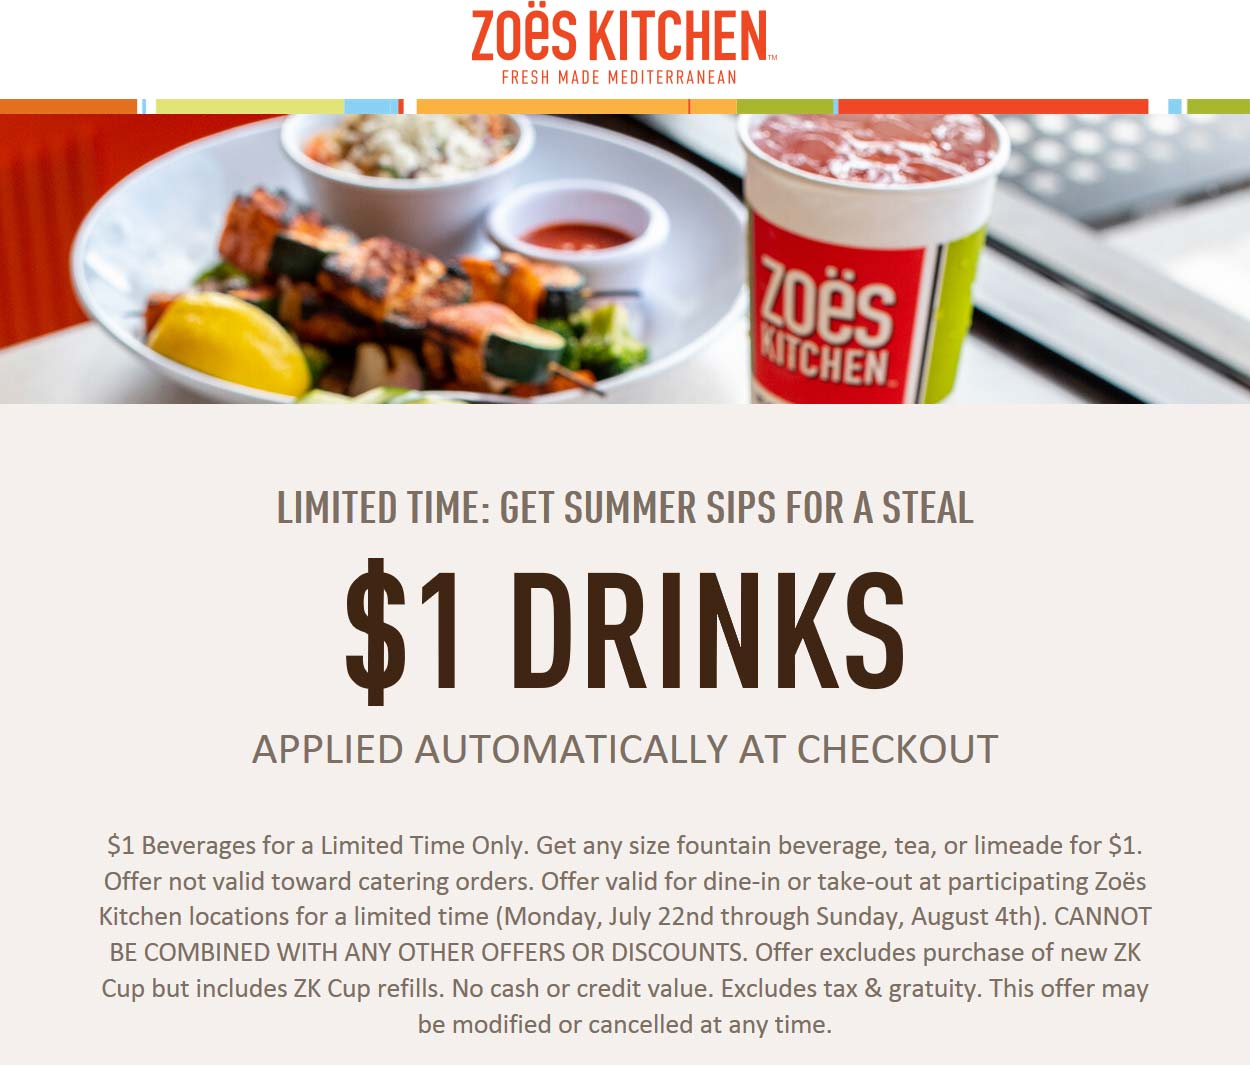 Zoes Kitchen Coupon November 2019 $1 drinks today at Zoes Kitchen